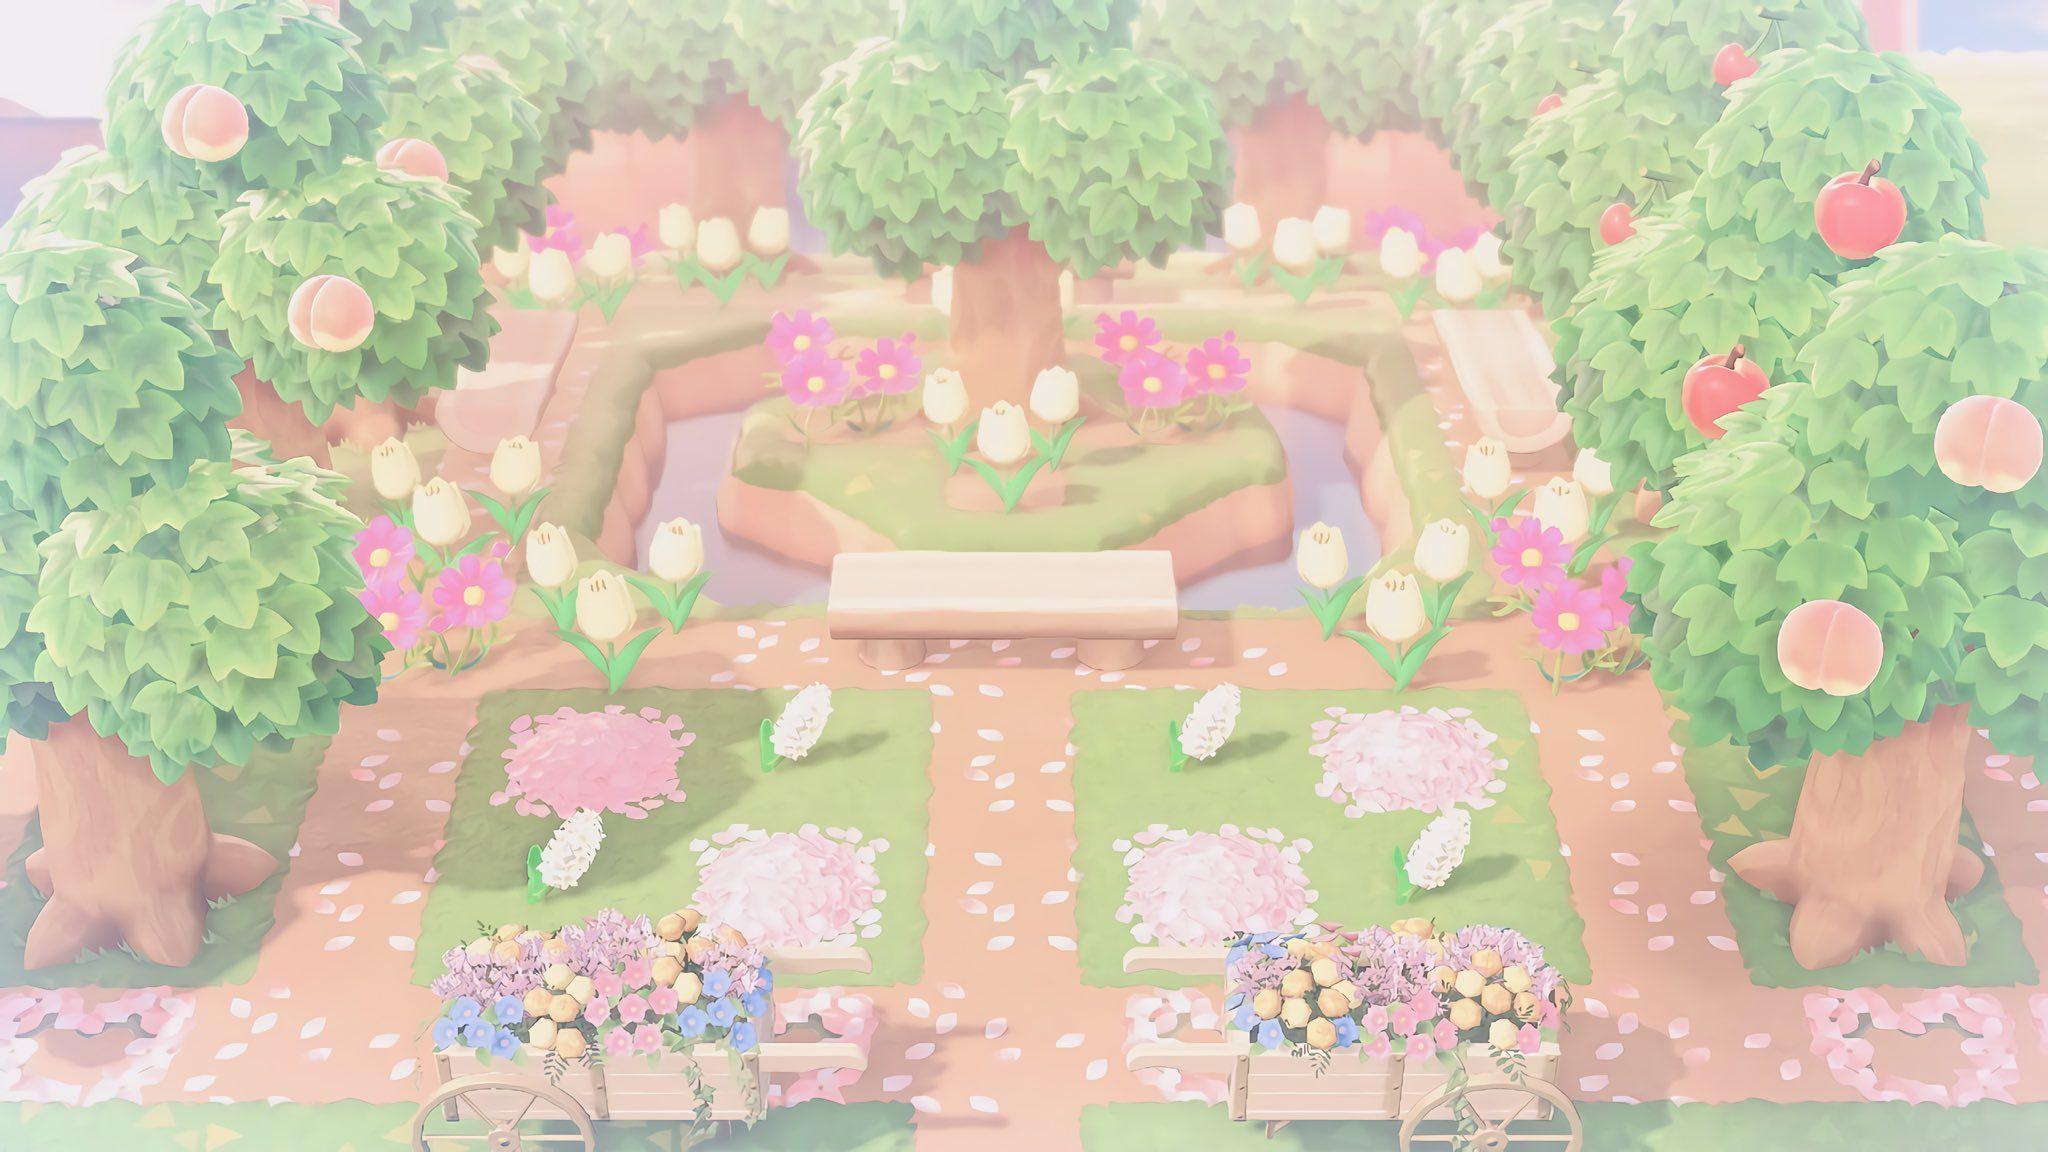 Pin By Shadowaye Le Fay On Animal Crossing In 2020 Animal Crossing Animal Crossing Qr Pink Animals